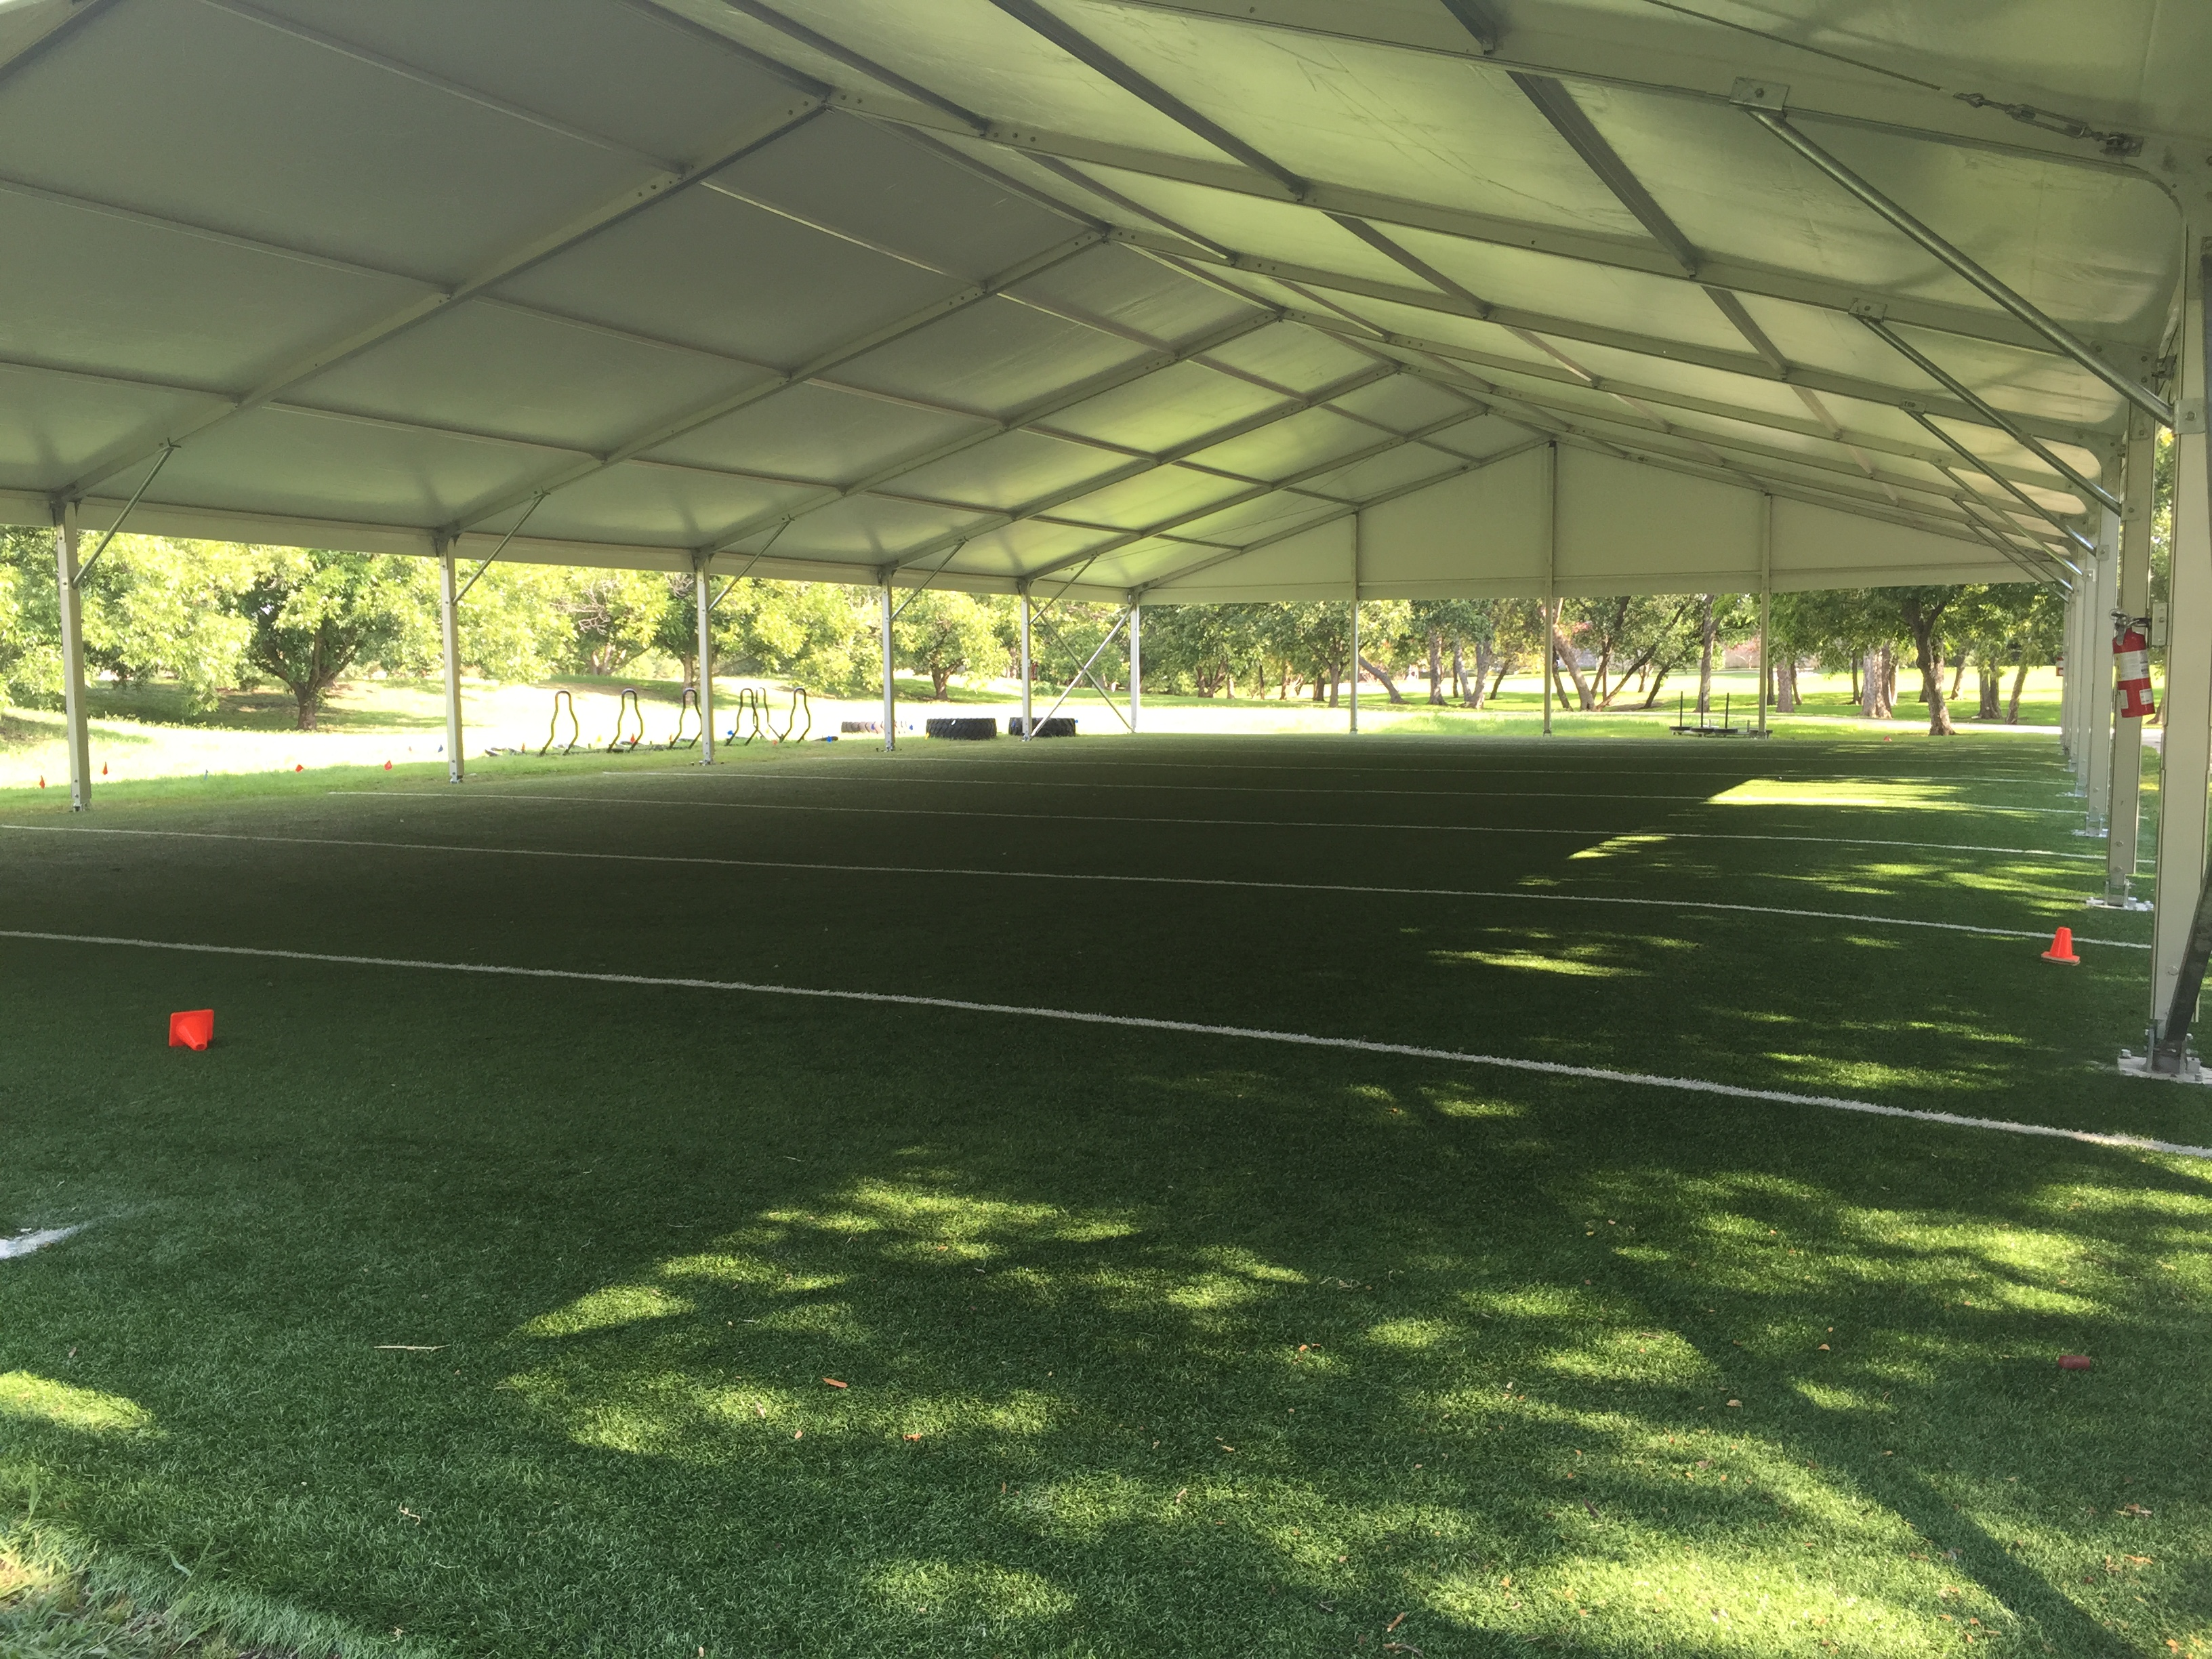 Practice Facility Covered by White Structure Tent Rental